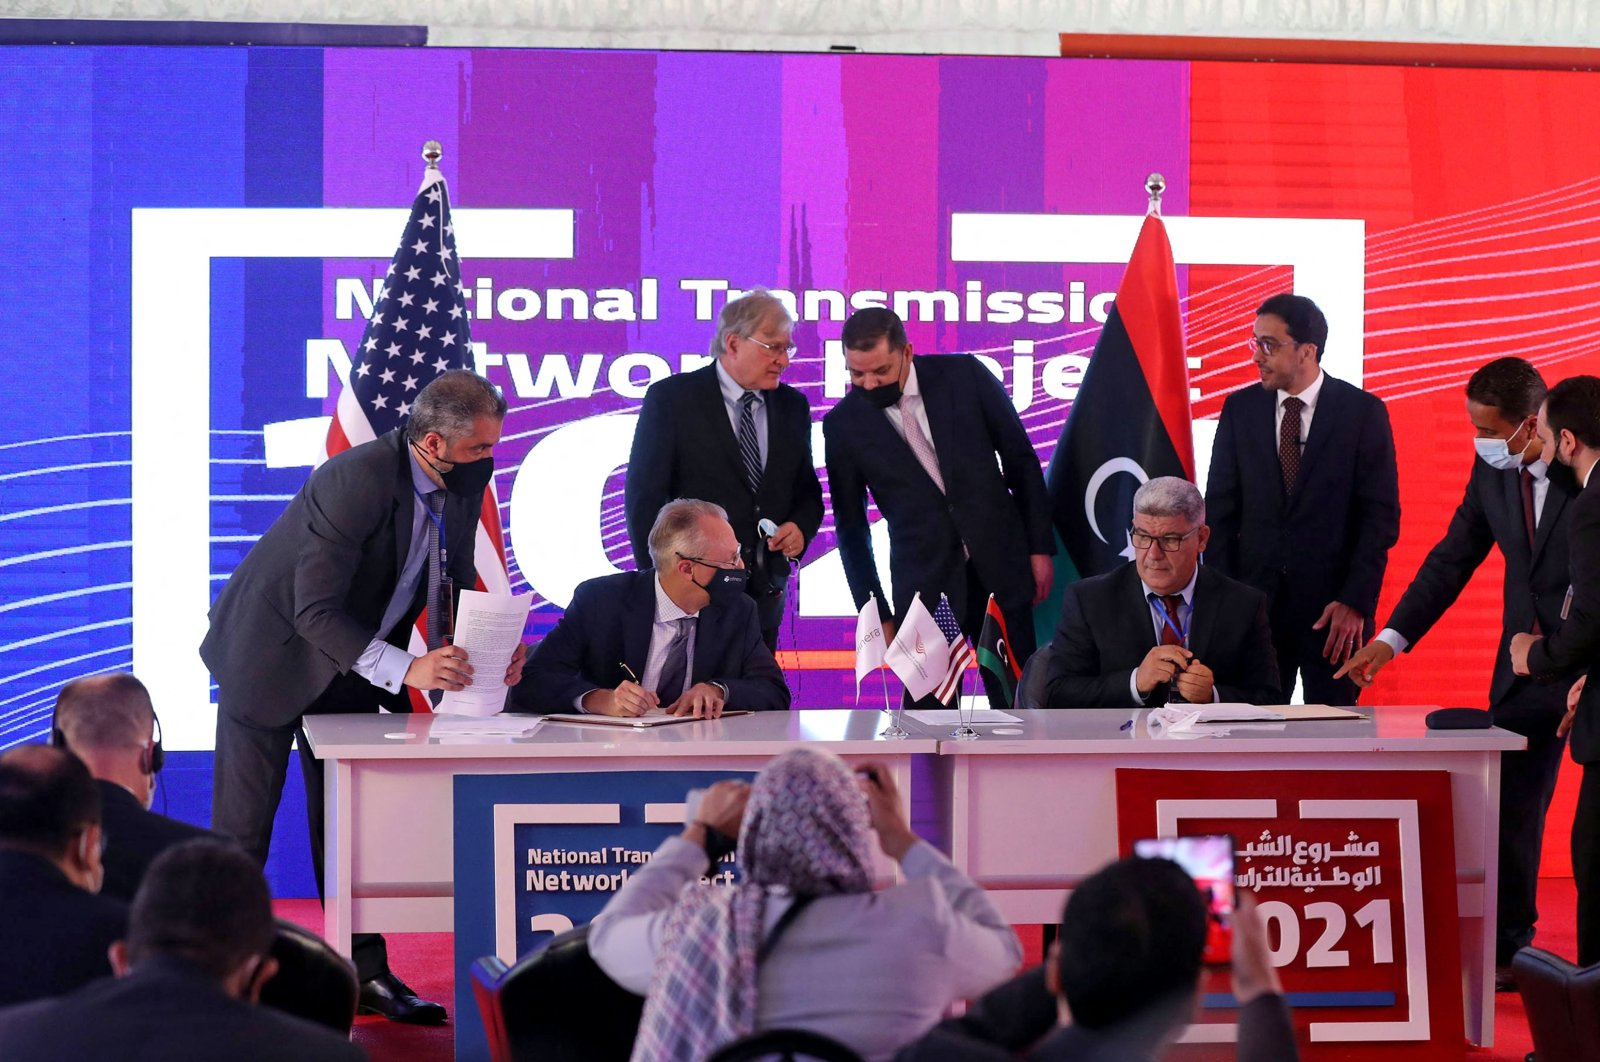 (Foreground L to R) Infinera's CEO and Director David Heard and Hatif Libya's Chairperson Muhammad Balras Ali sign a deal in the presence of (background L to R) U.S. Ambassador to Libya Richard Norland alongside Libyan Prime Minister Abdul Hamid Mohammed Dbeibah in Libya's capital Tripoli, July 26, 2021. (AFP Photo)